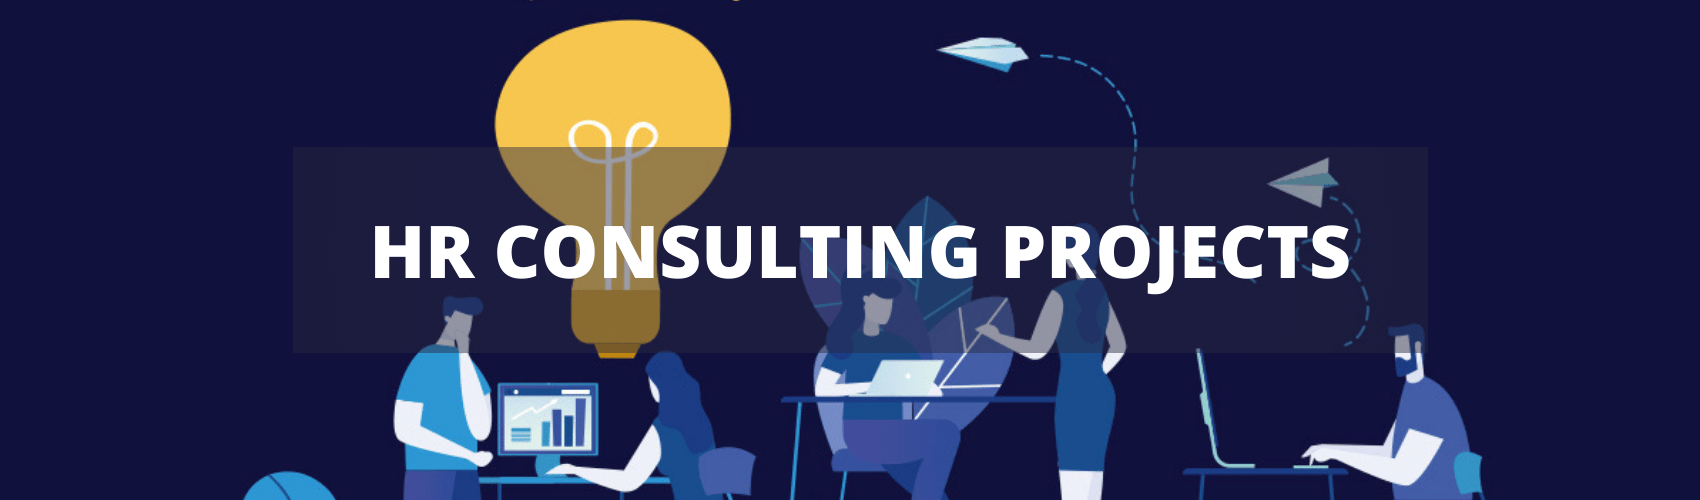 HR Consulting Projects